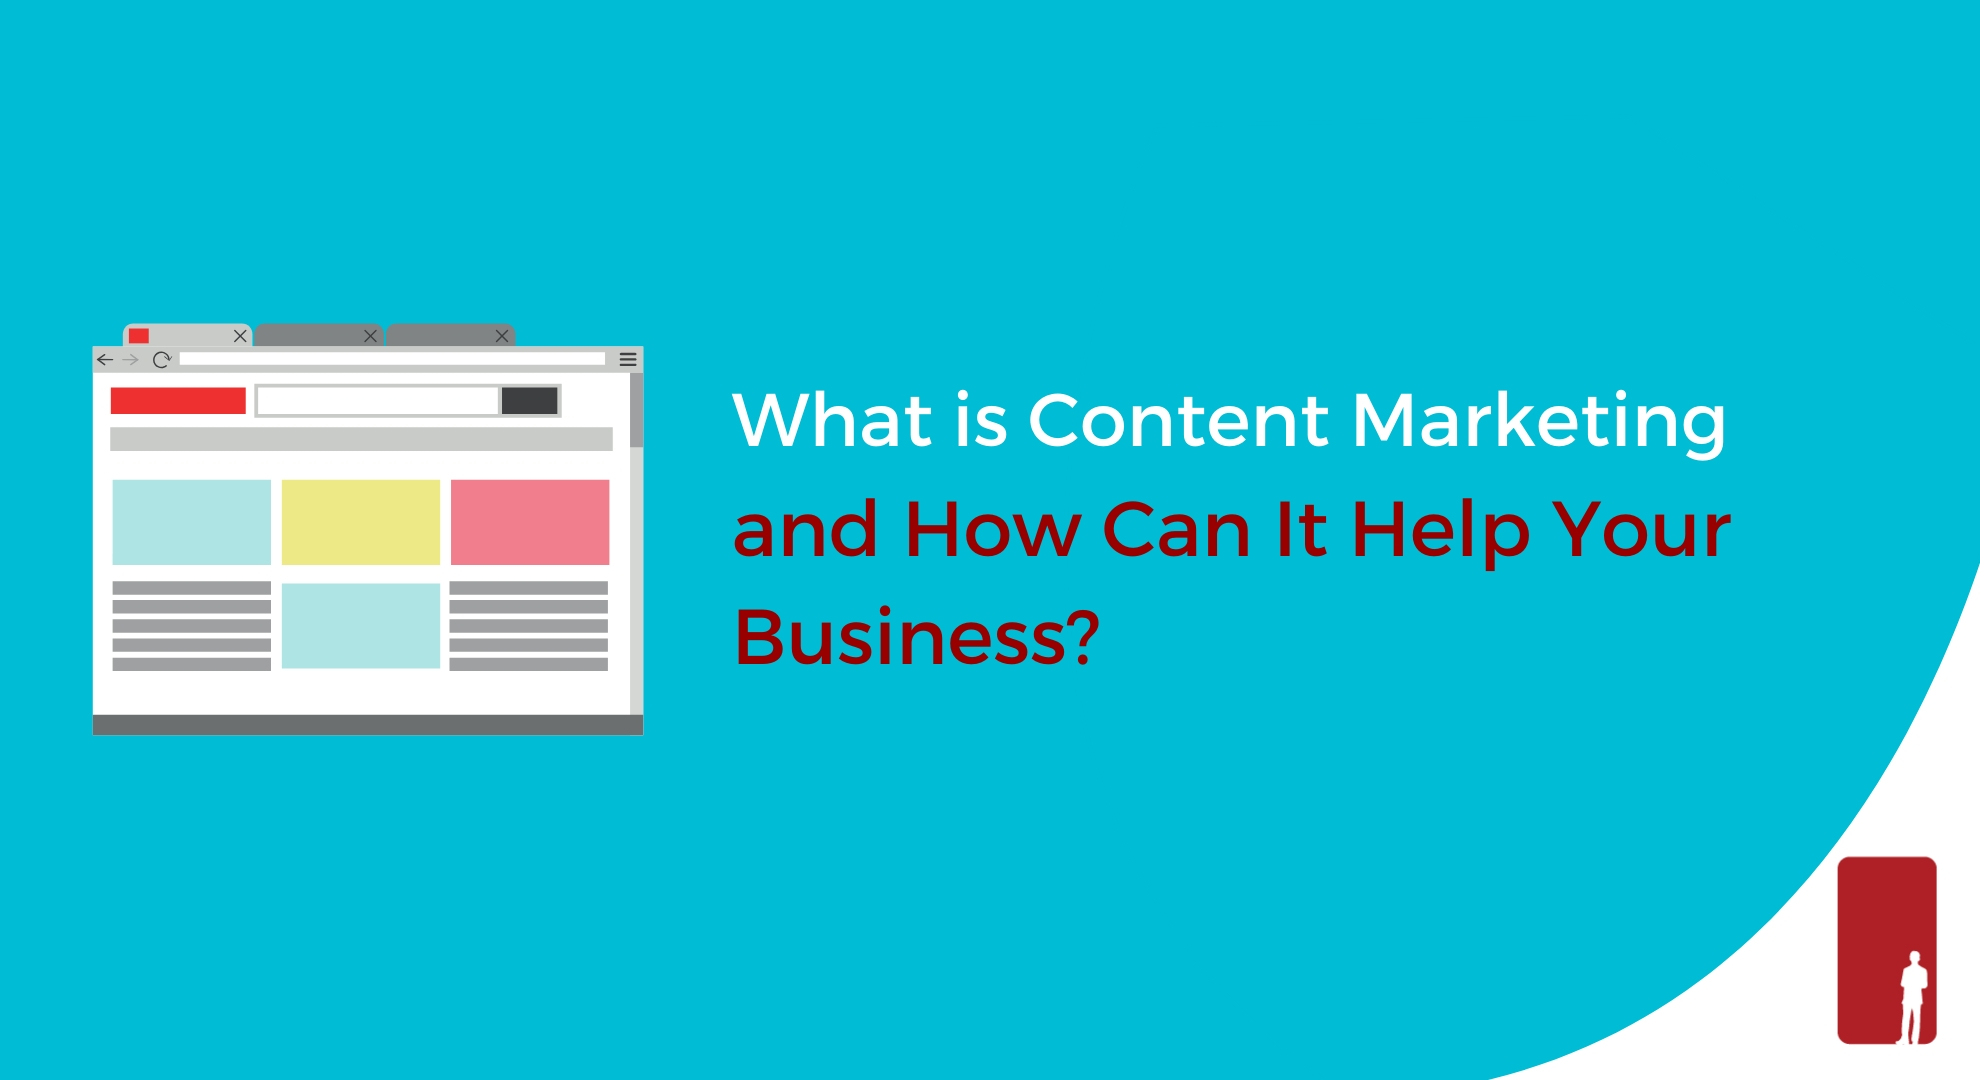 What is Content Marketing and How Can It Help Your Business?